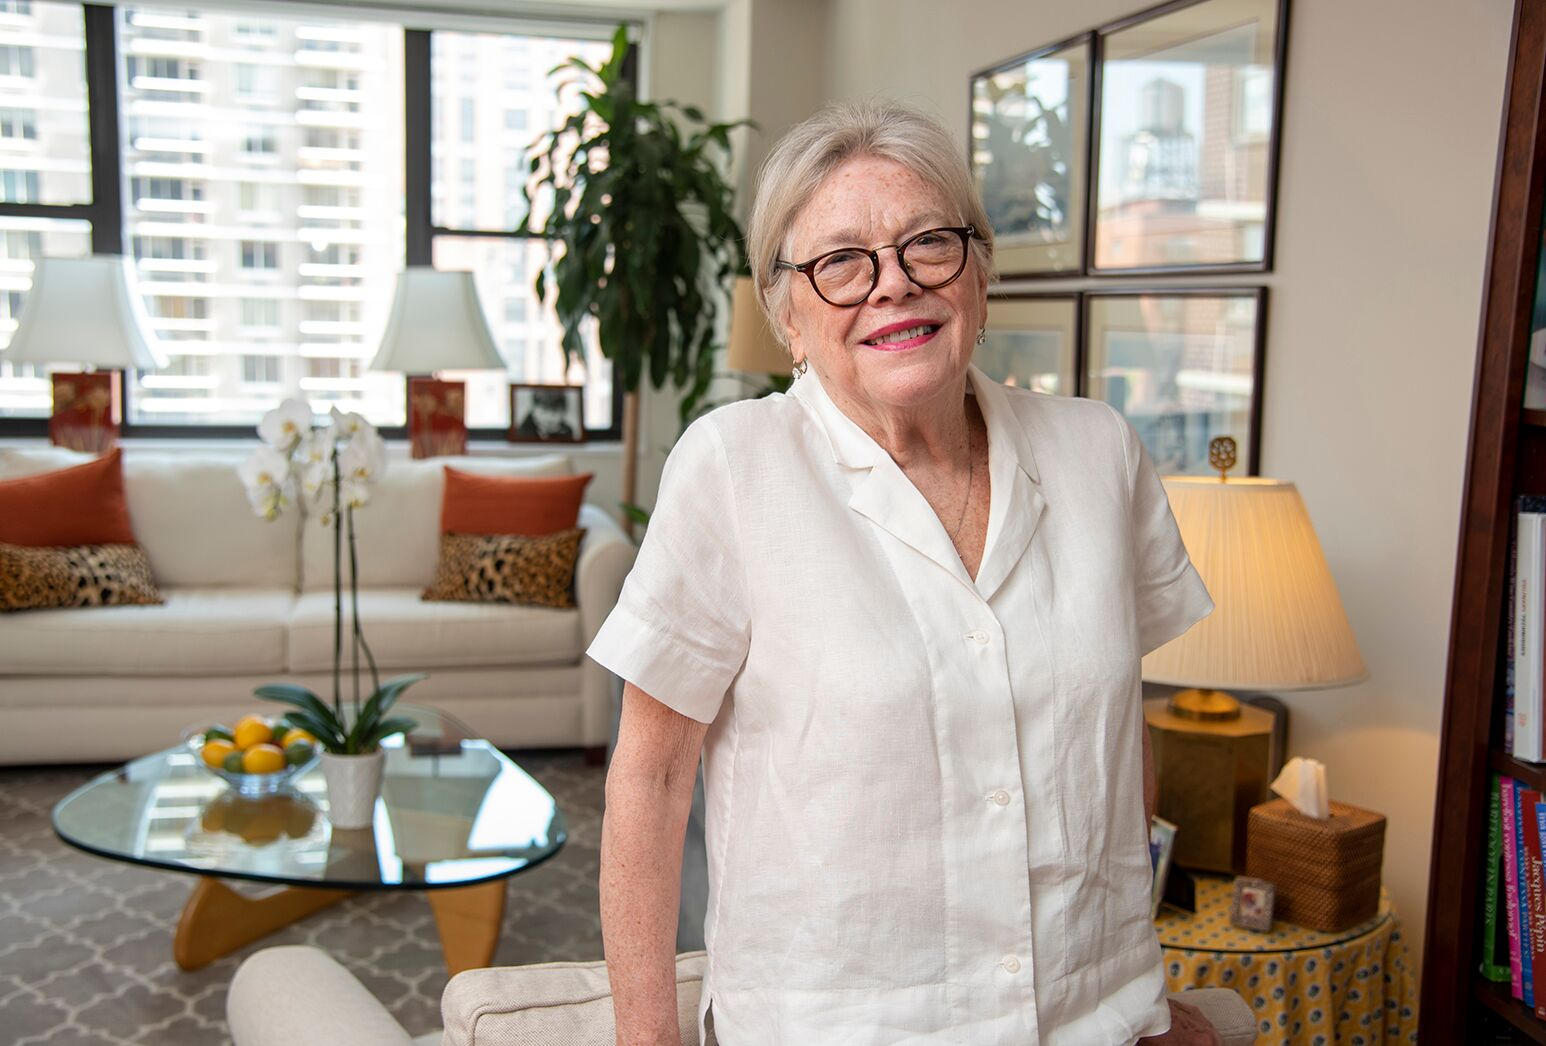 Woman with gray hair and black glasses in white blouse in front of a coffee table and couch.